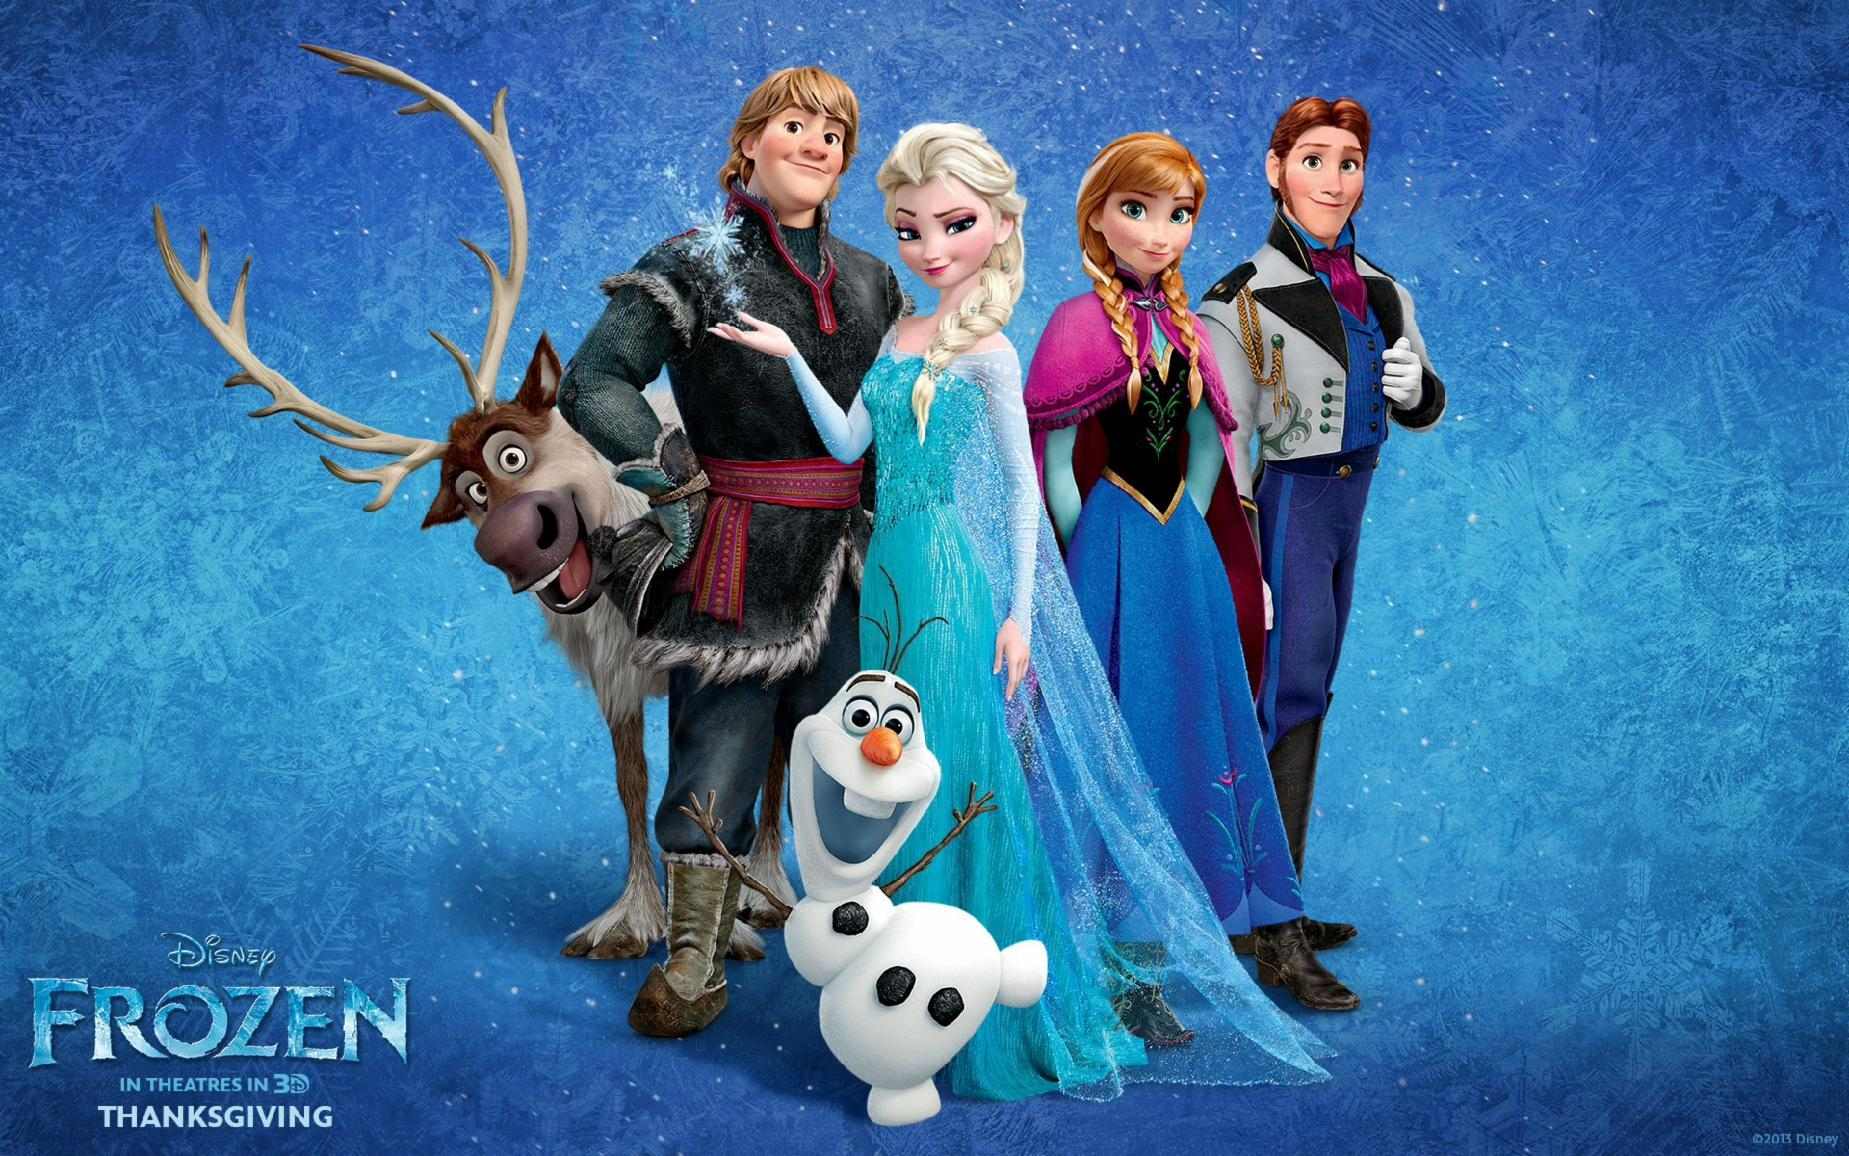 How well do you know Frozen? (Easy)